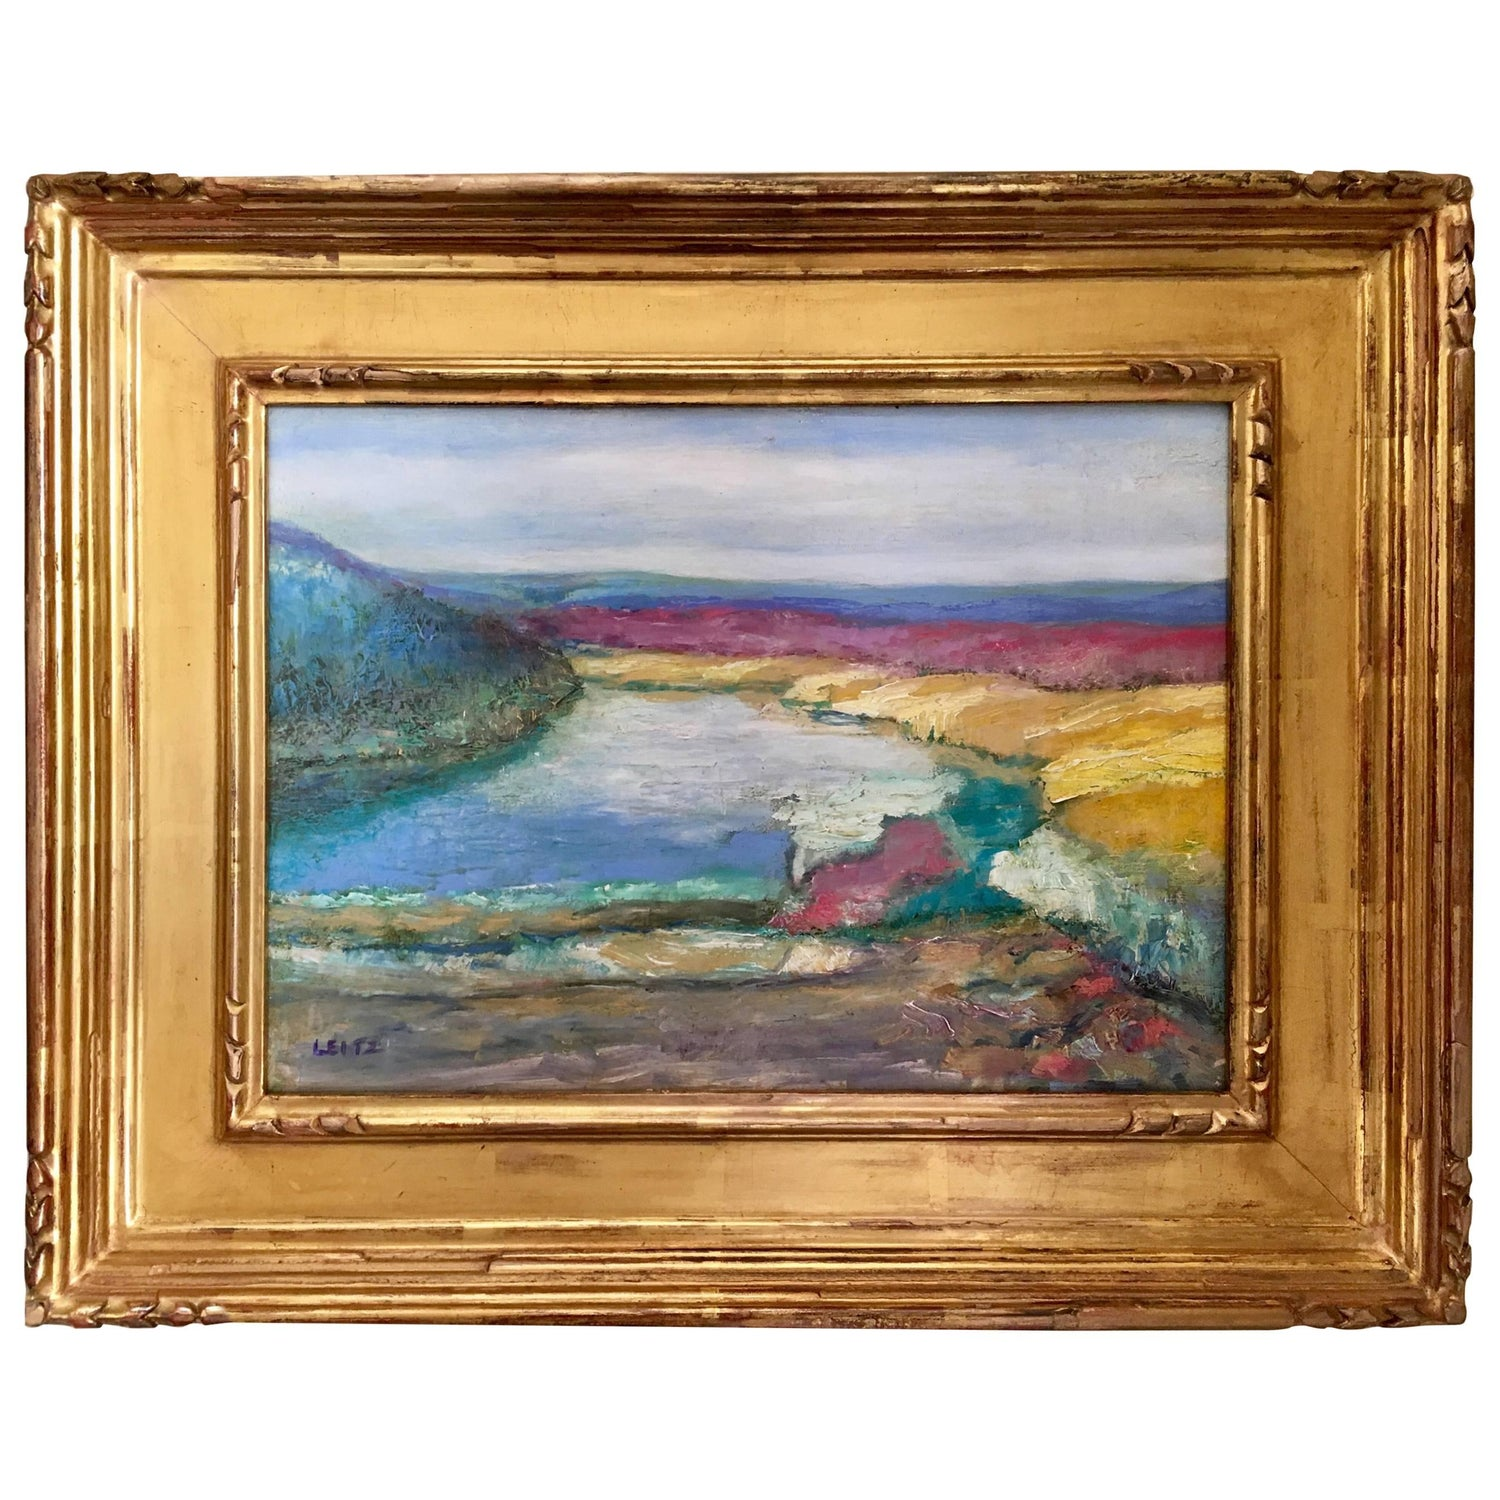 Connecticut watercolor artists directory - Jeffrey Leitz Original Signed Painting Connecticut Landscape Abtract For Sale At 1stdibs